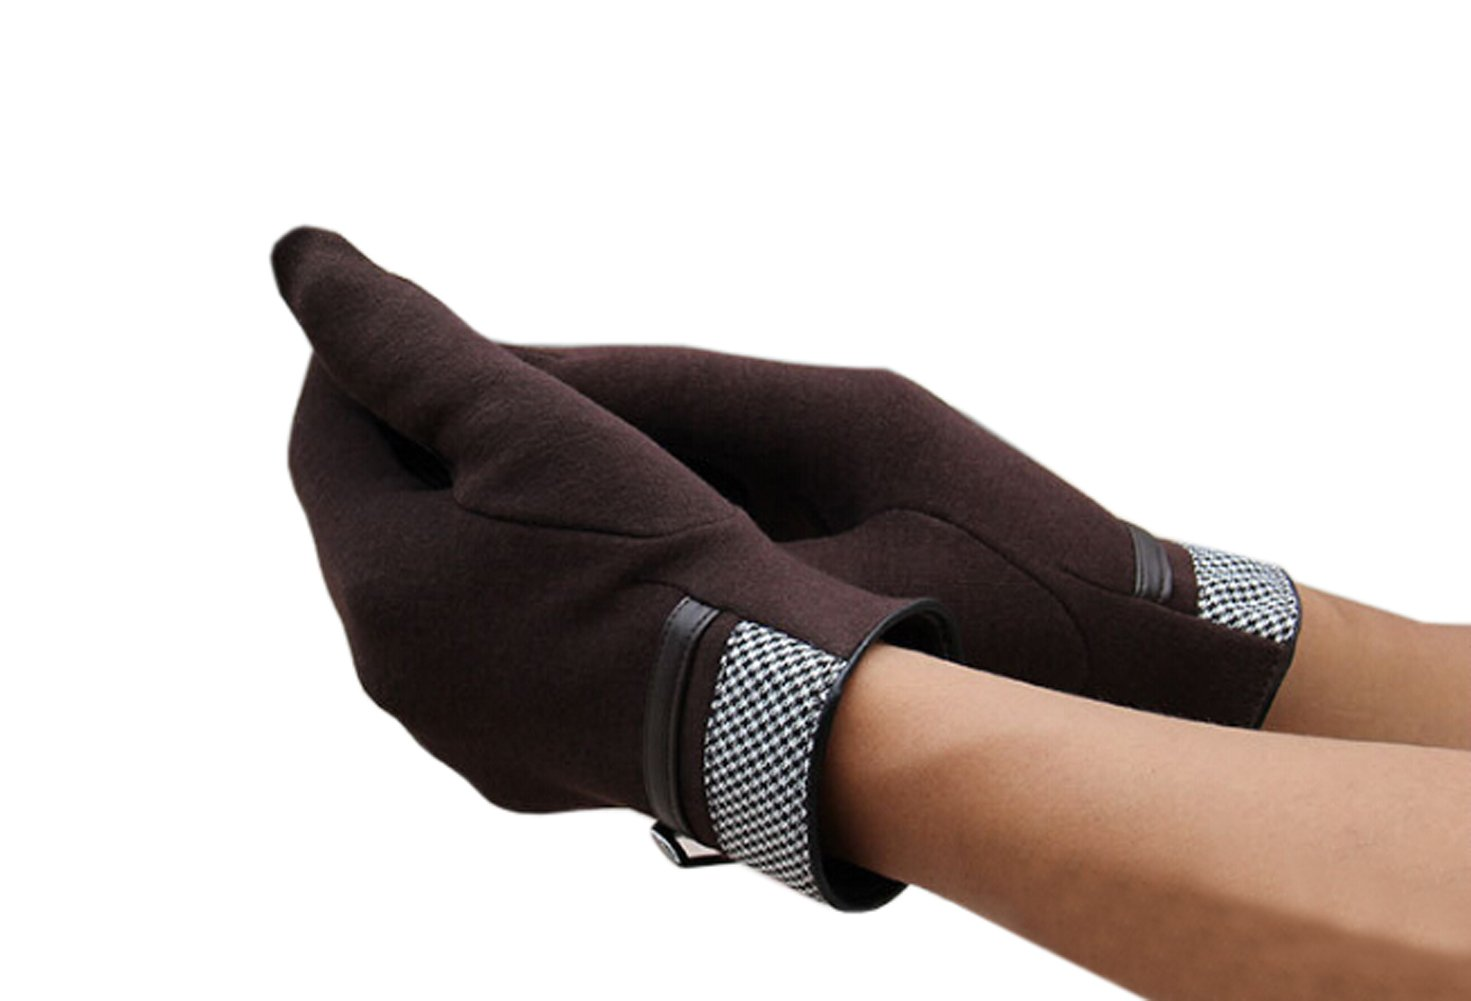 Olyer Men's Mirco Velvet Gloves Warmer Gloves With Touch Screen Finger Tip (Coffee) by Olyer (Image #3)